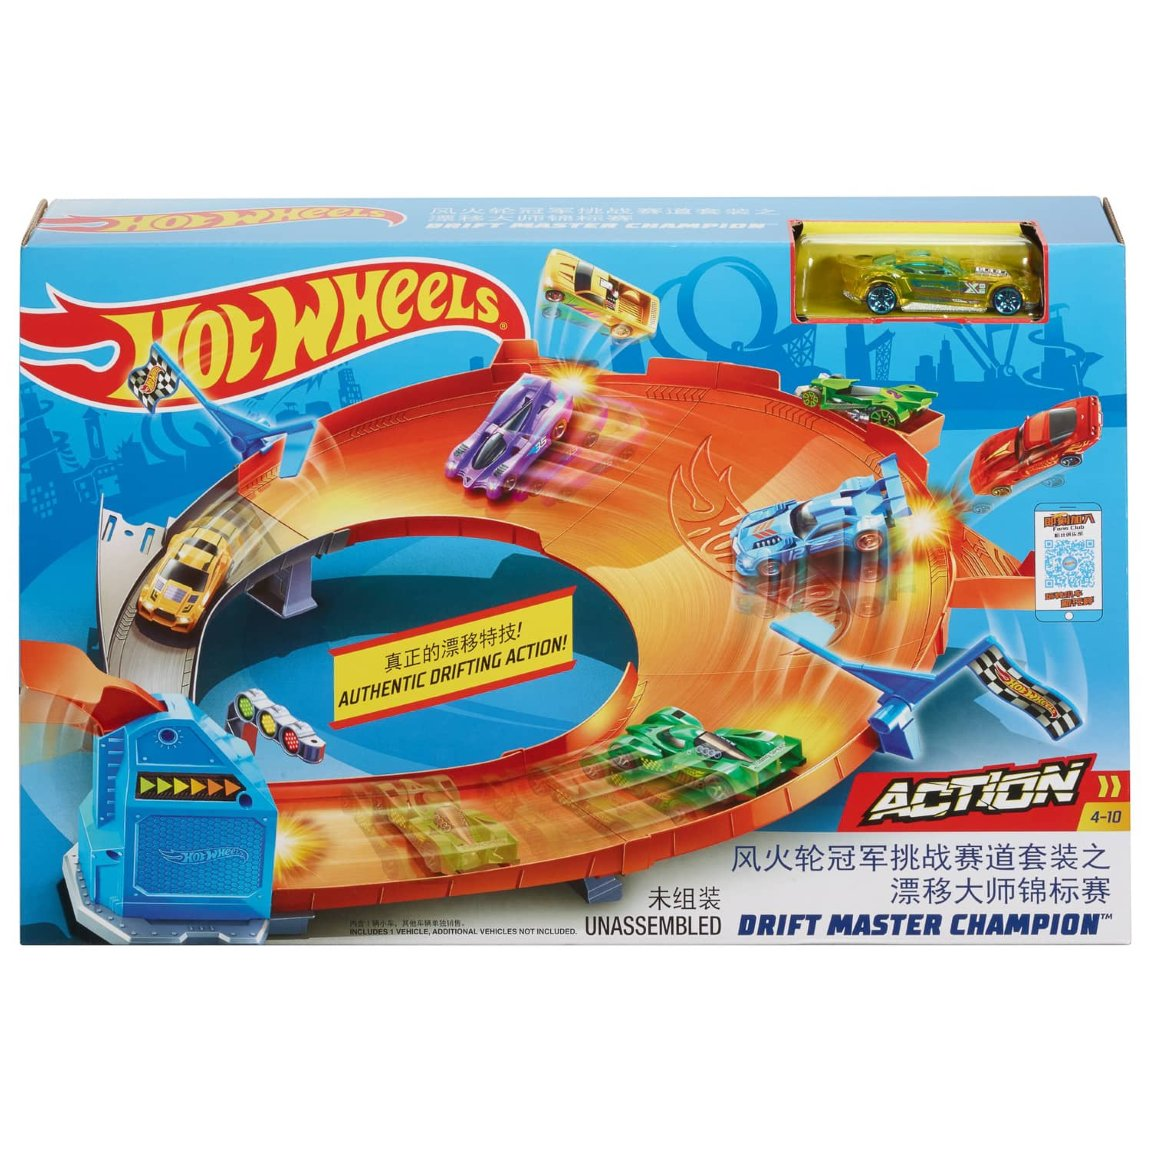 Hot Wheels Drift Master Champion Playset